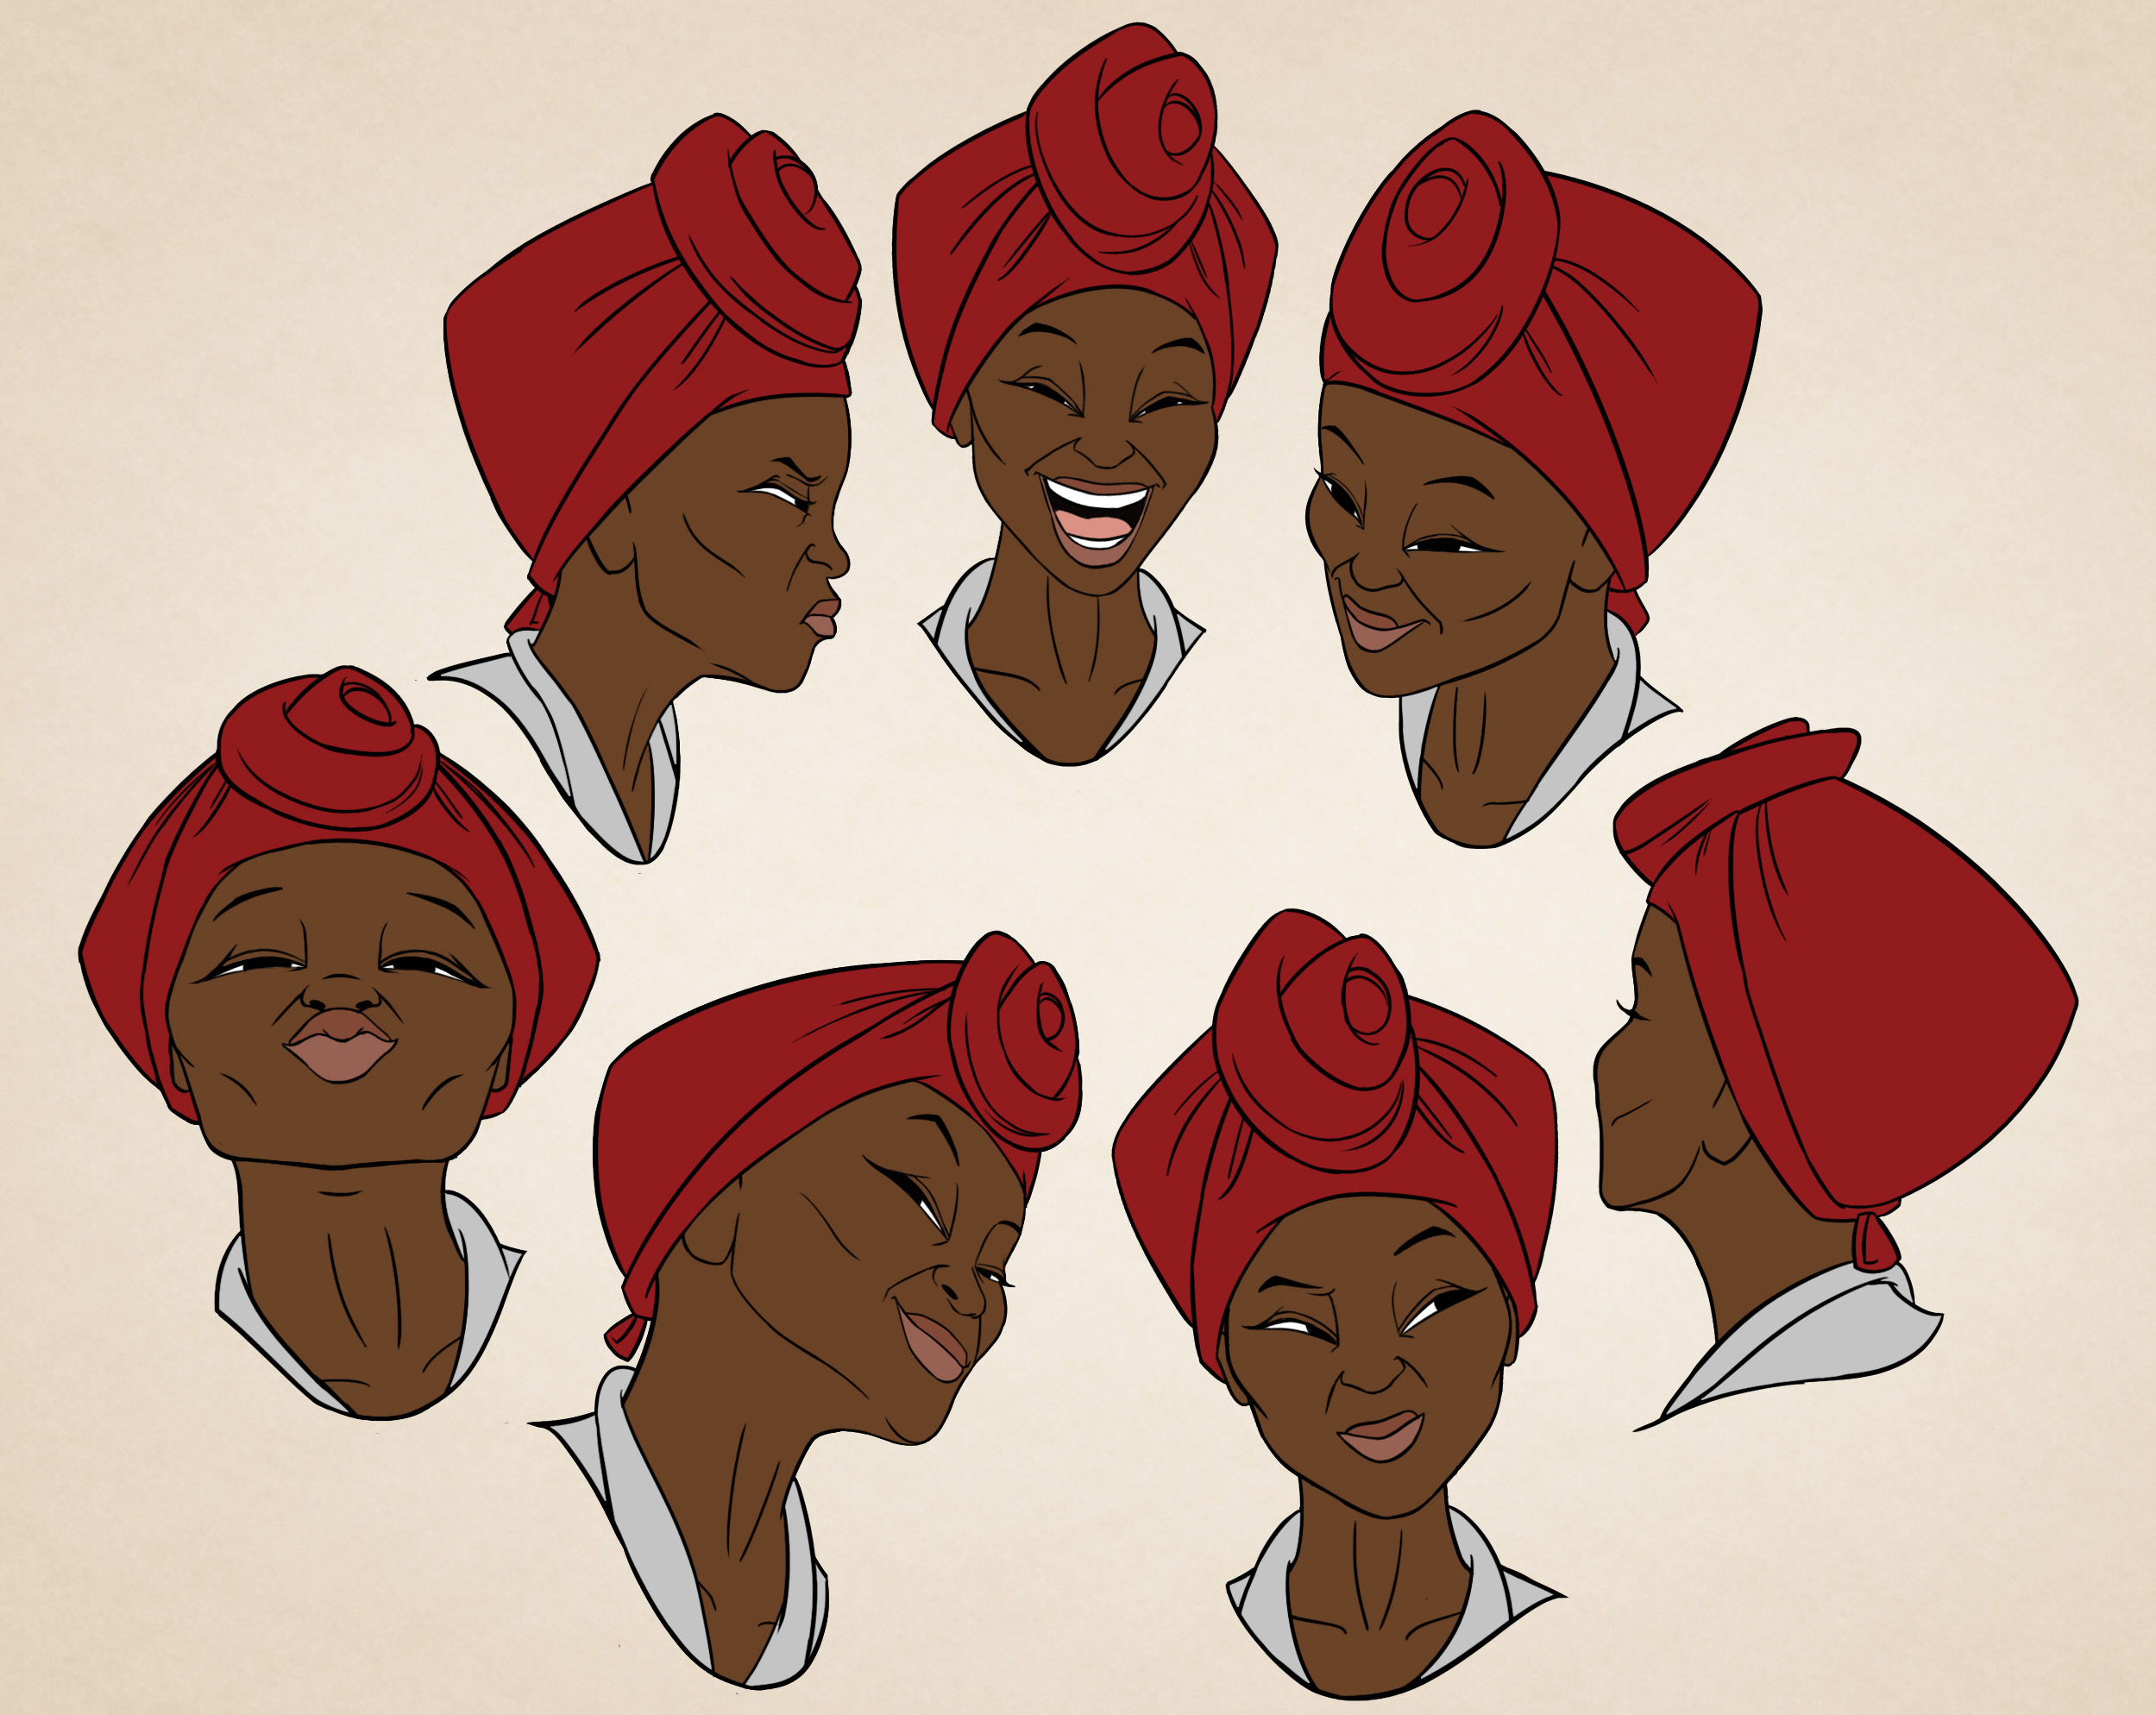 momma_rose_expression_sheet_cropped.jpg